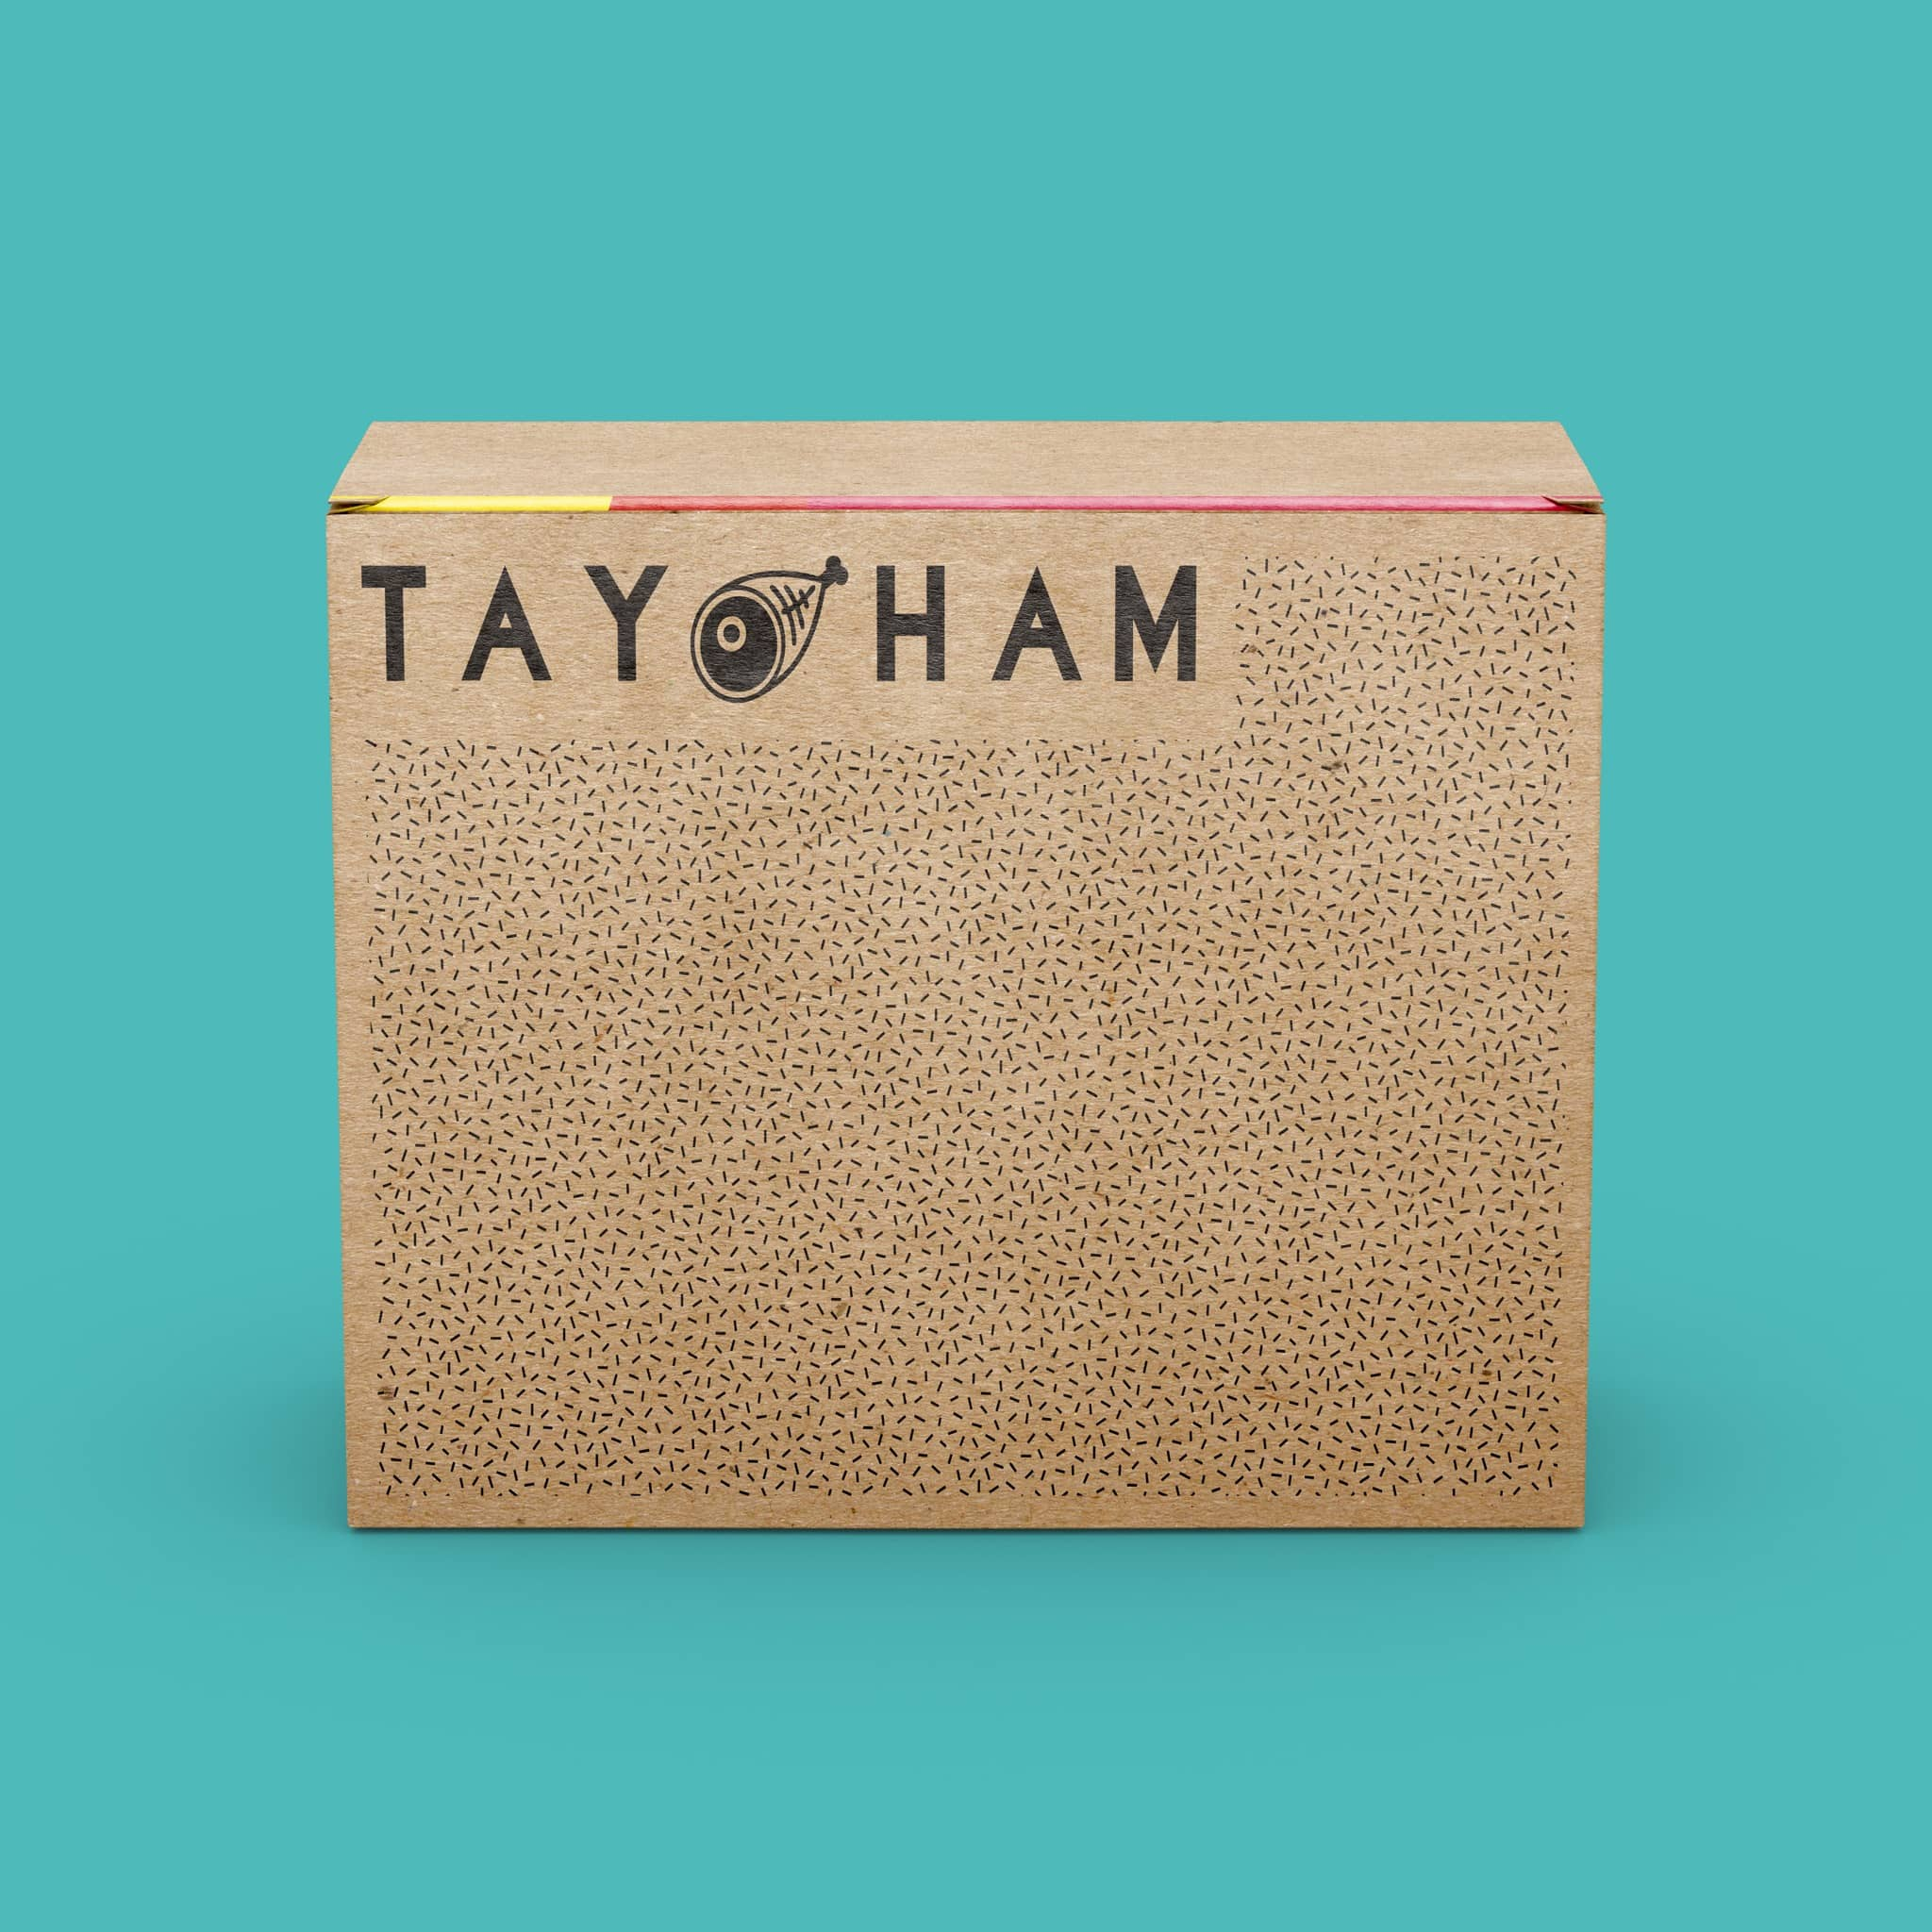 Tayham - package desgin by Brand Engine